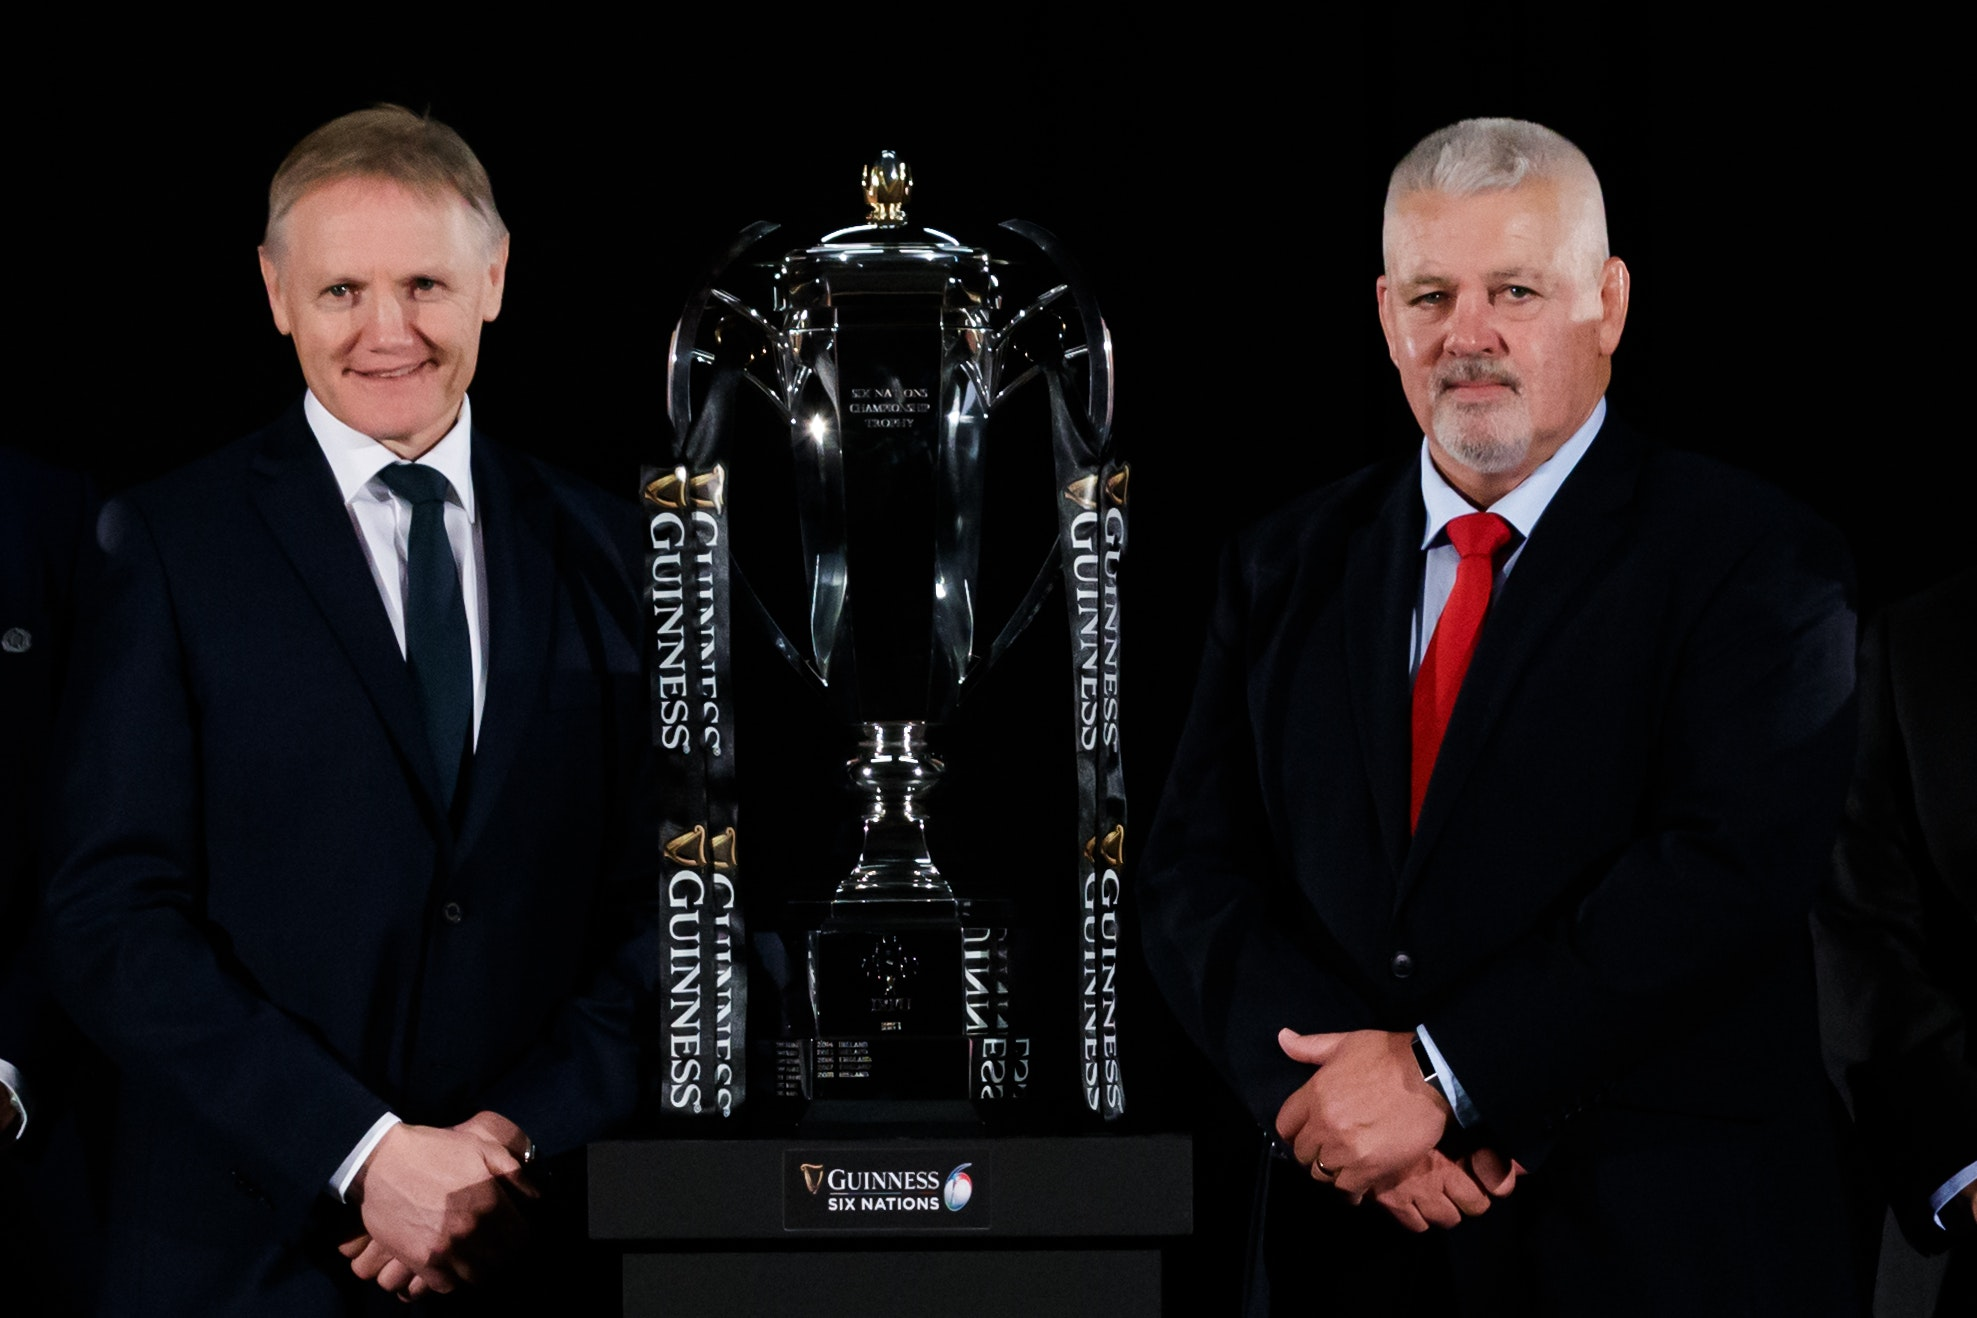 Joe Schmidt, left, and Warren Gatland